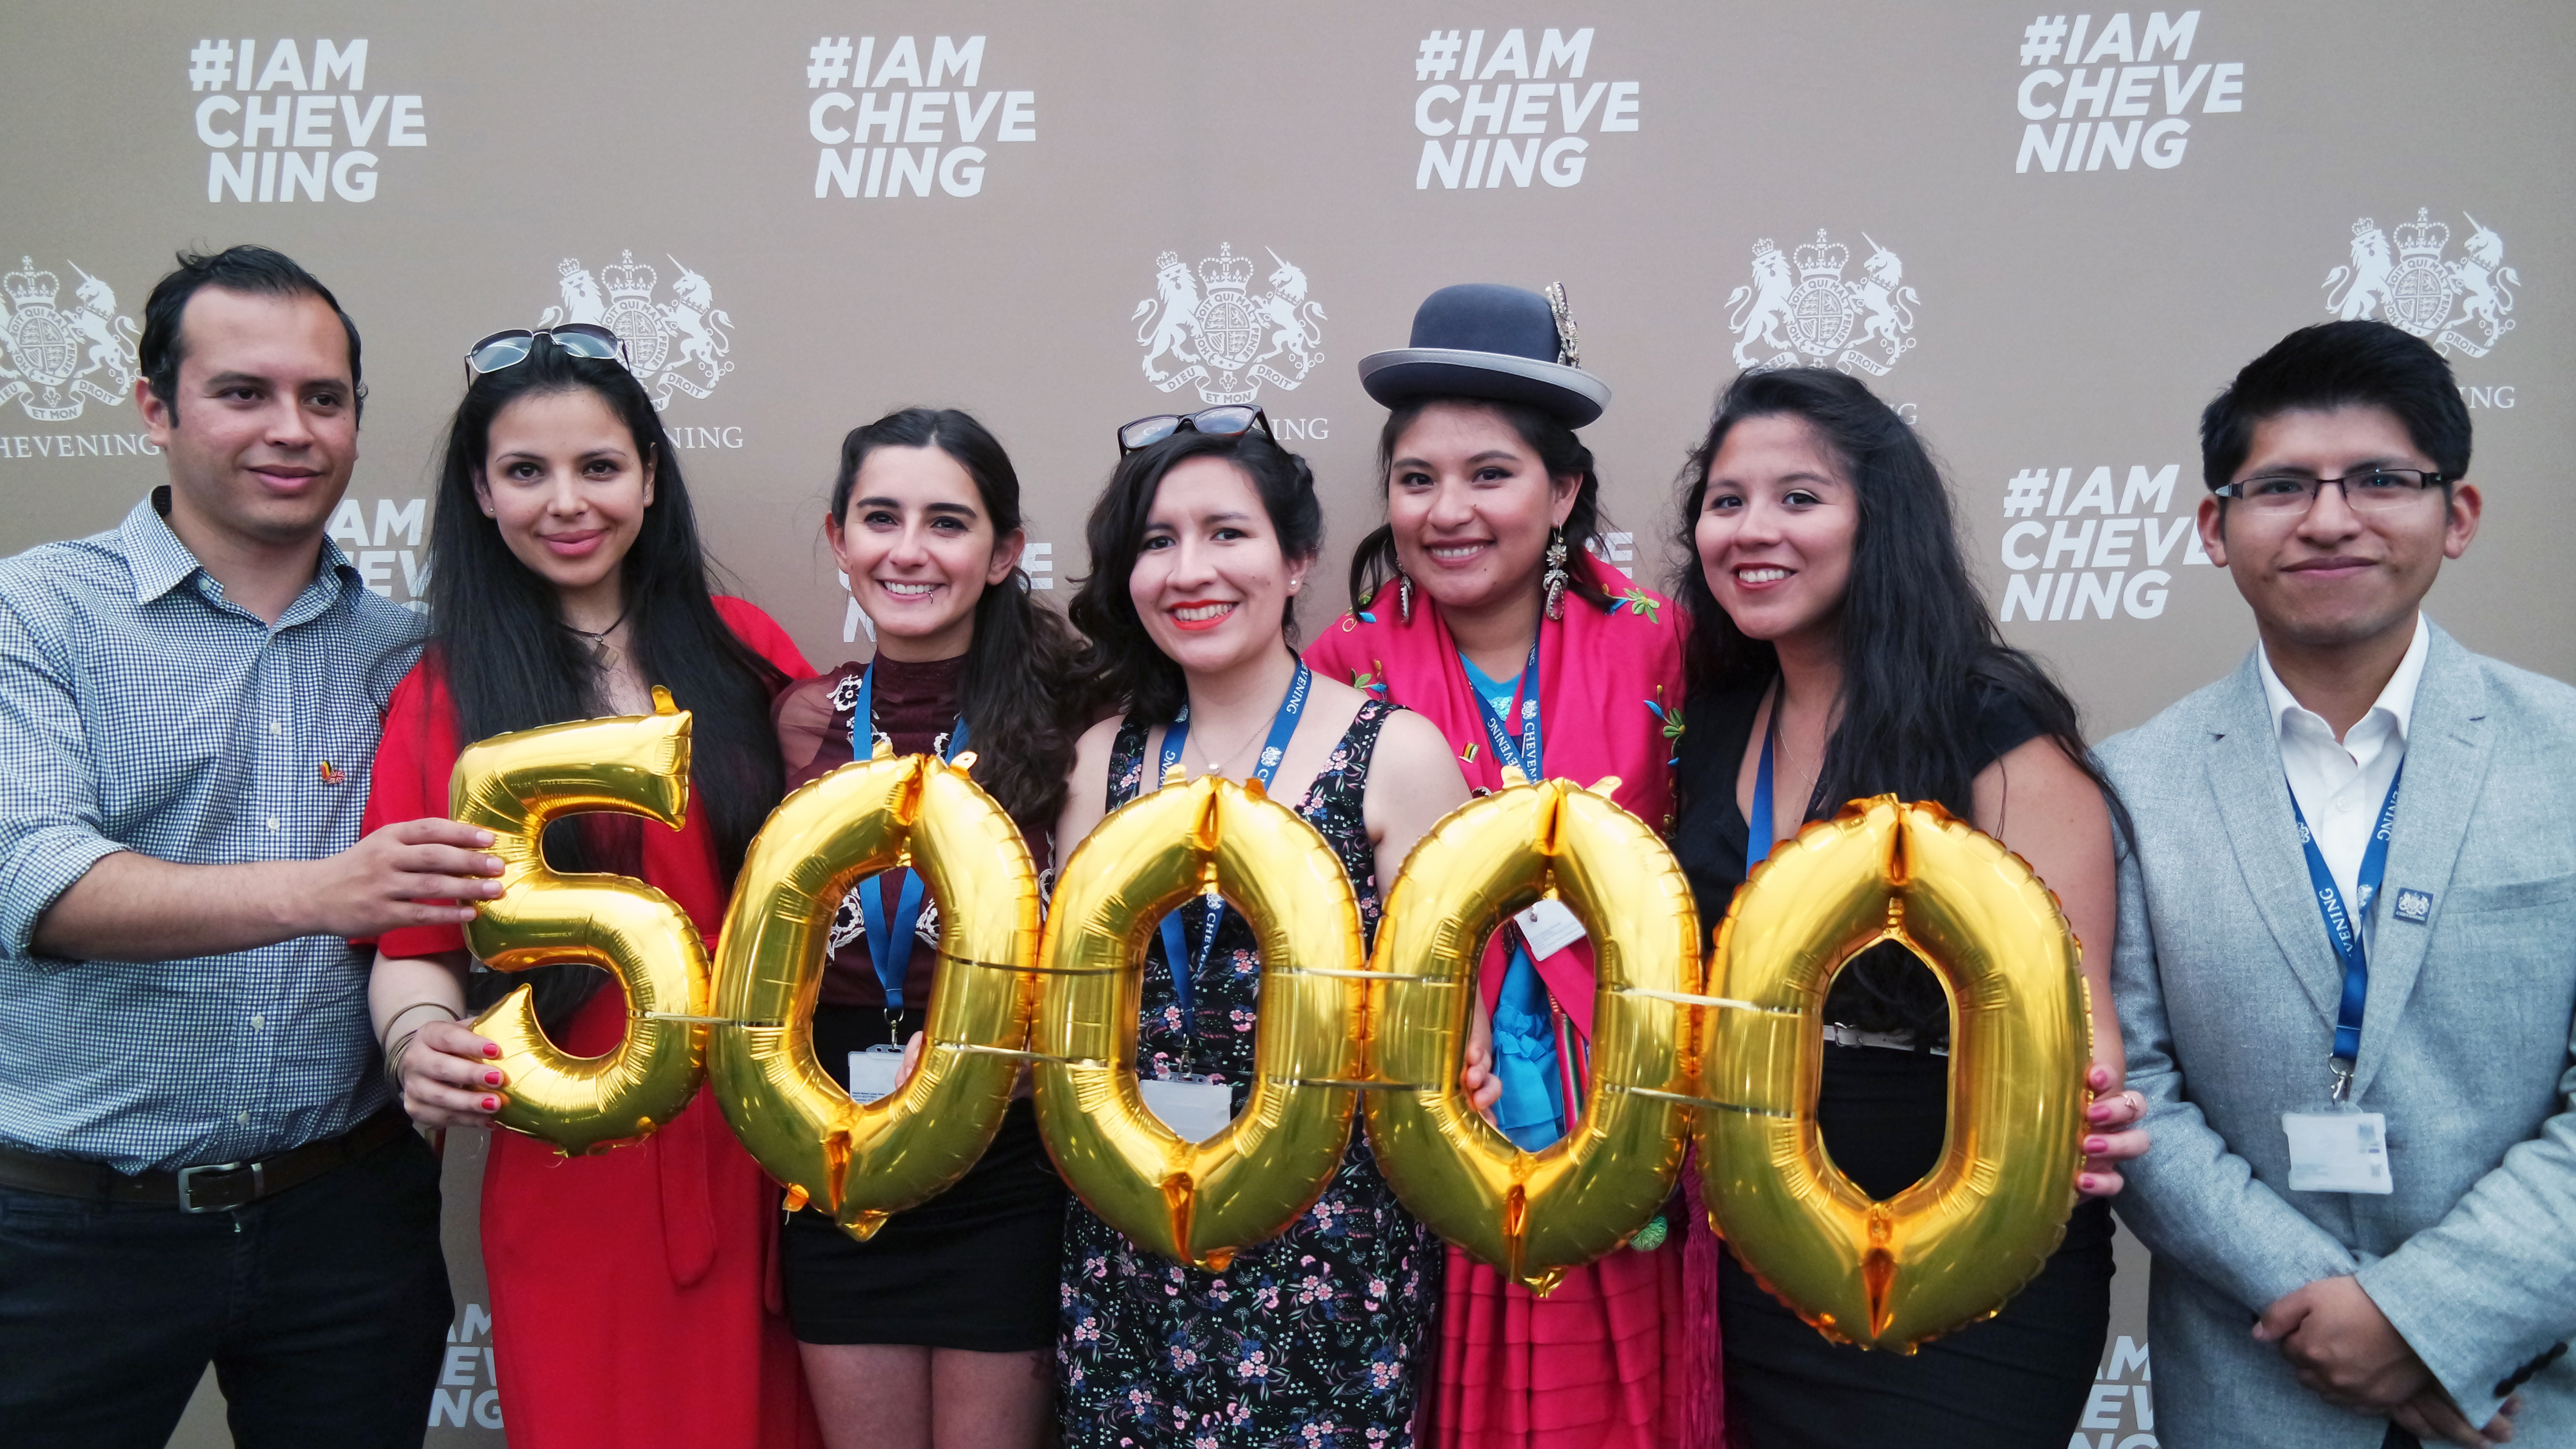 CHEVENING HITS 50,000 ALUMNI